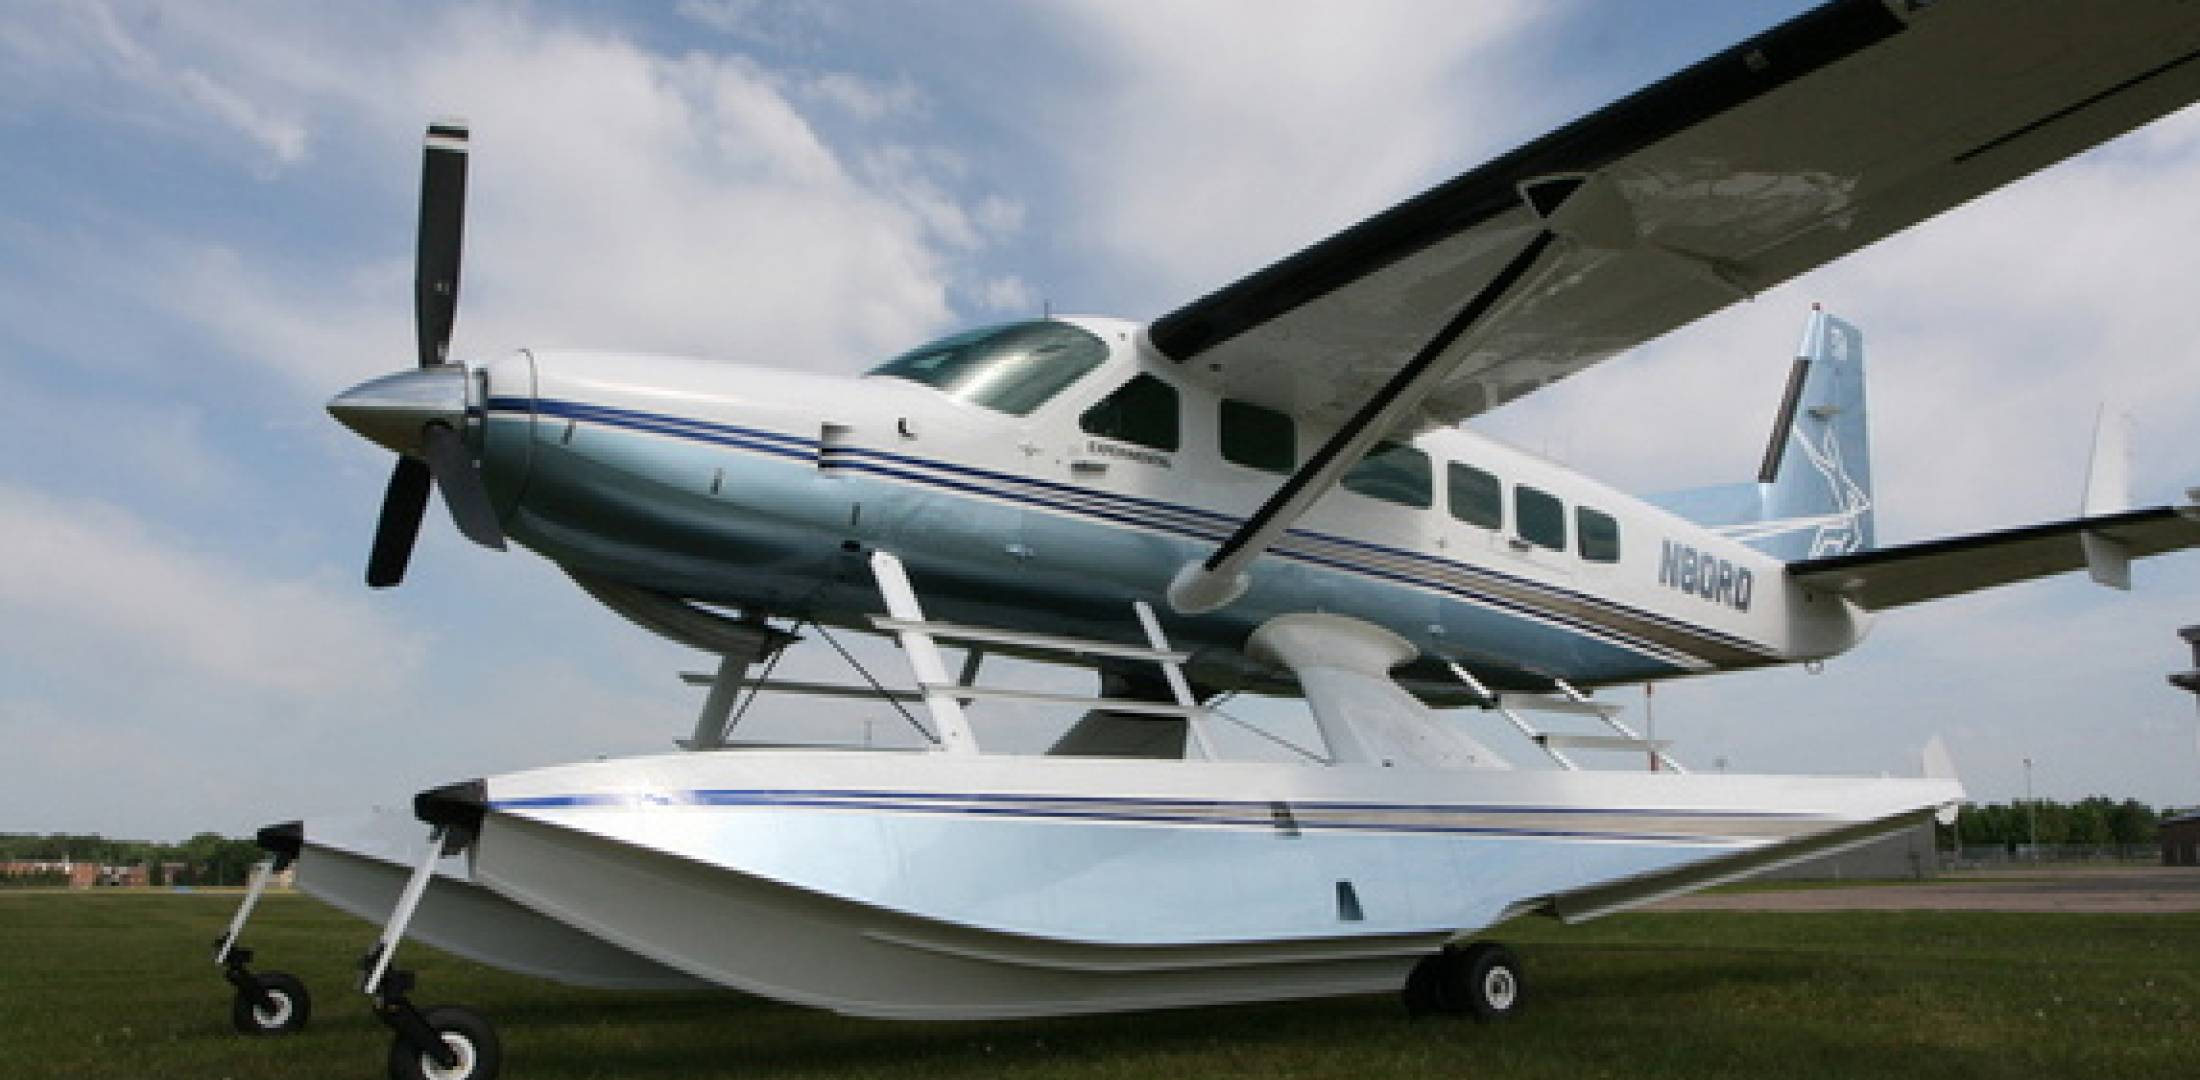 Wipline 8750 floats are pitched at the Cessna Caravan series